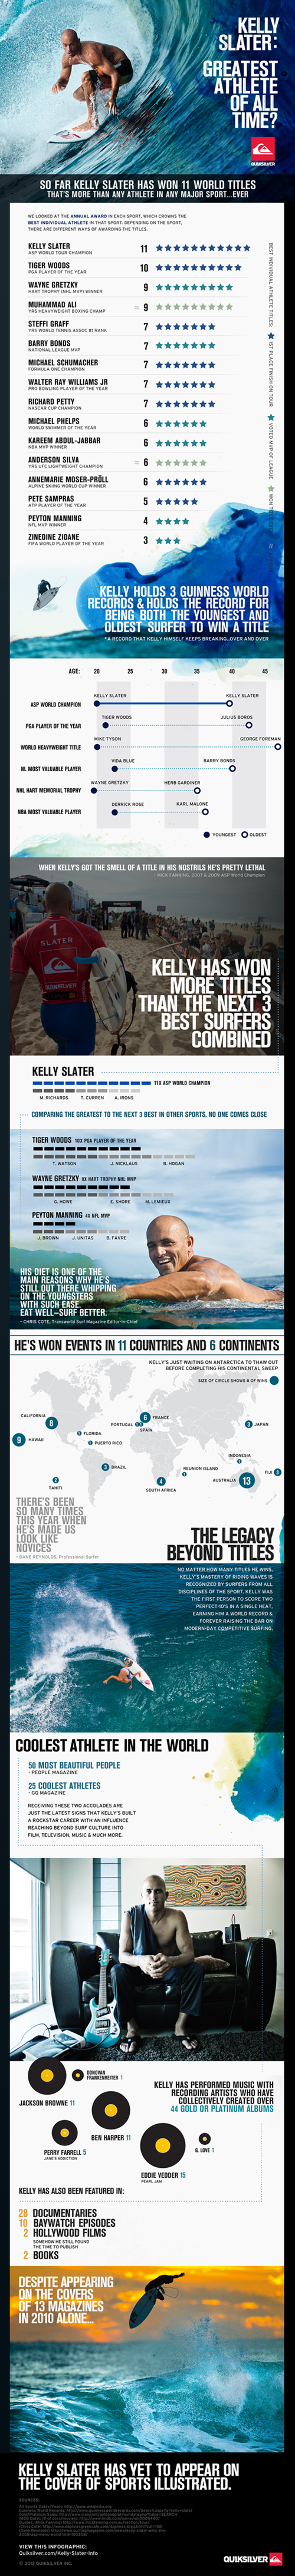 Kelly Slater: Greatest Athlete of All Time? infographic